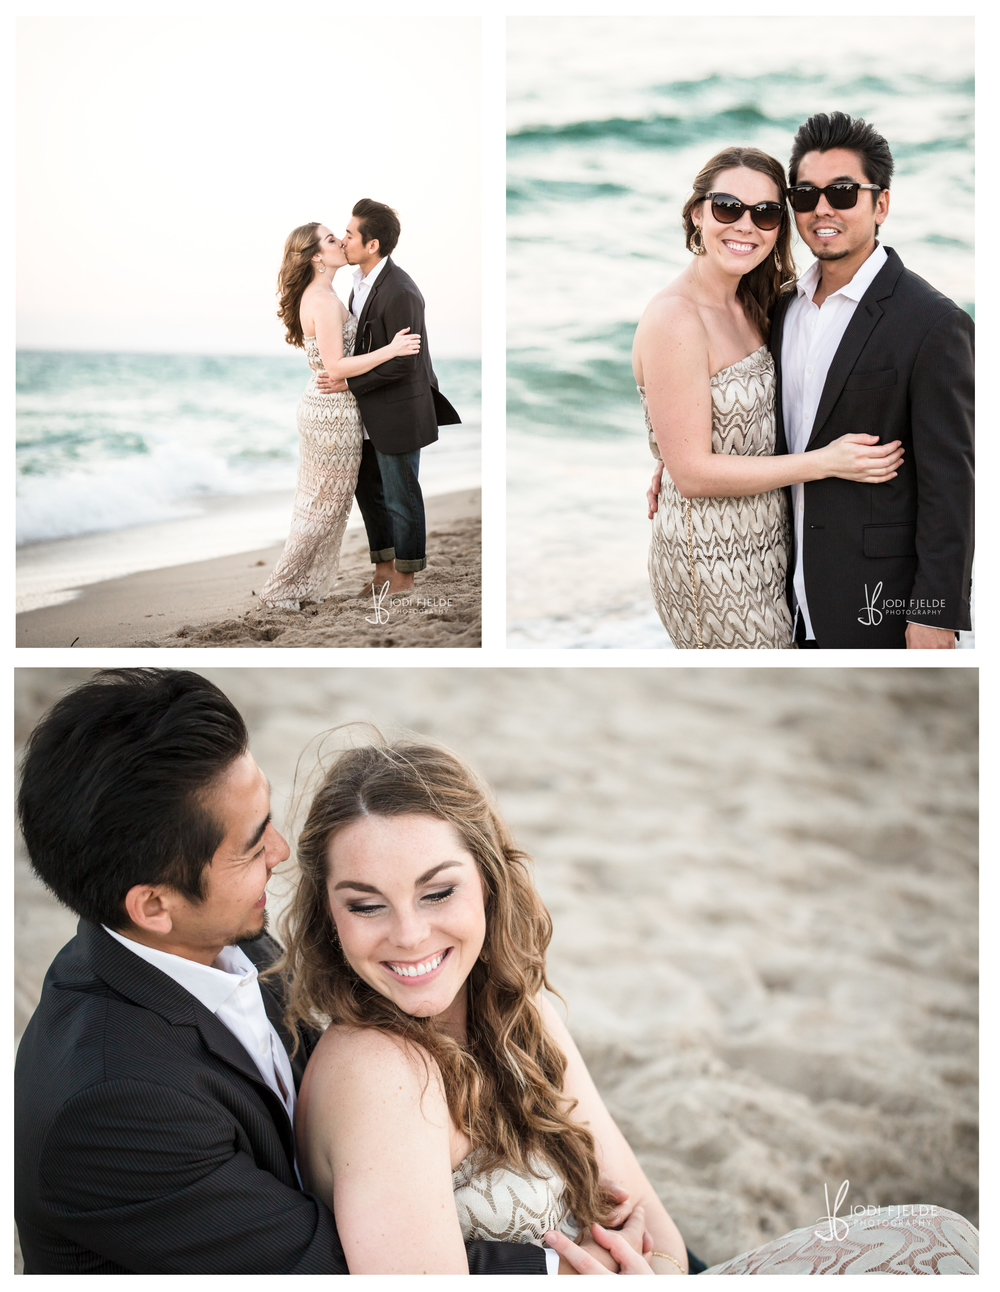 Fort_Lauderdale_engagement_session_Kelsey_Ken_Jodi_Fjelde_Photography_7.jpg